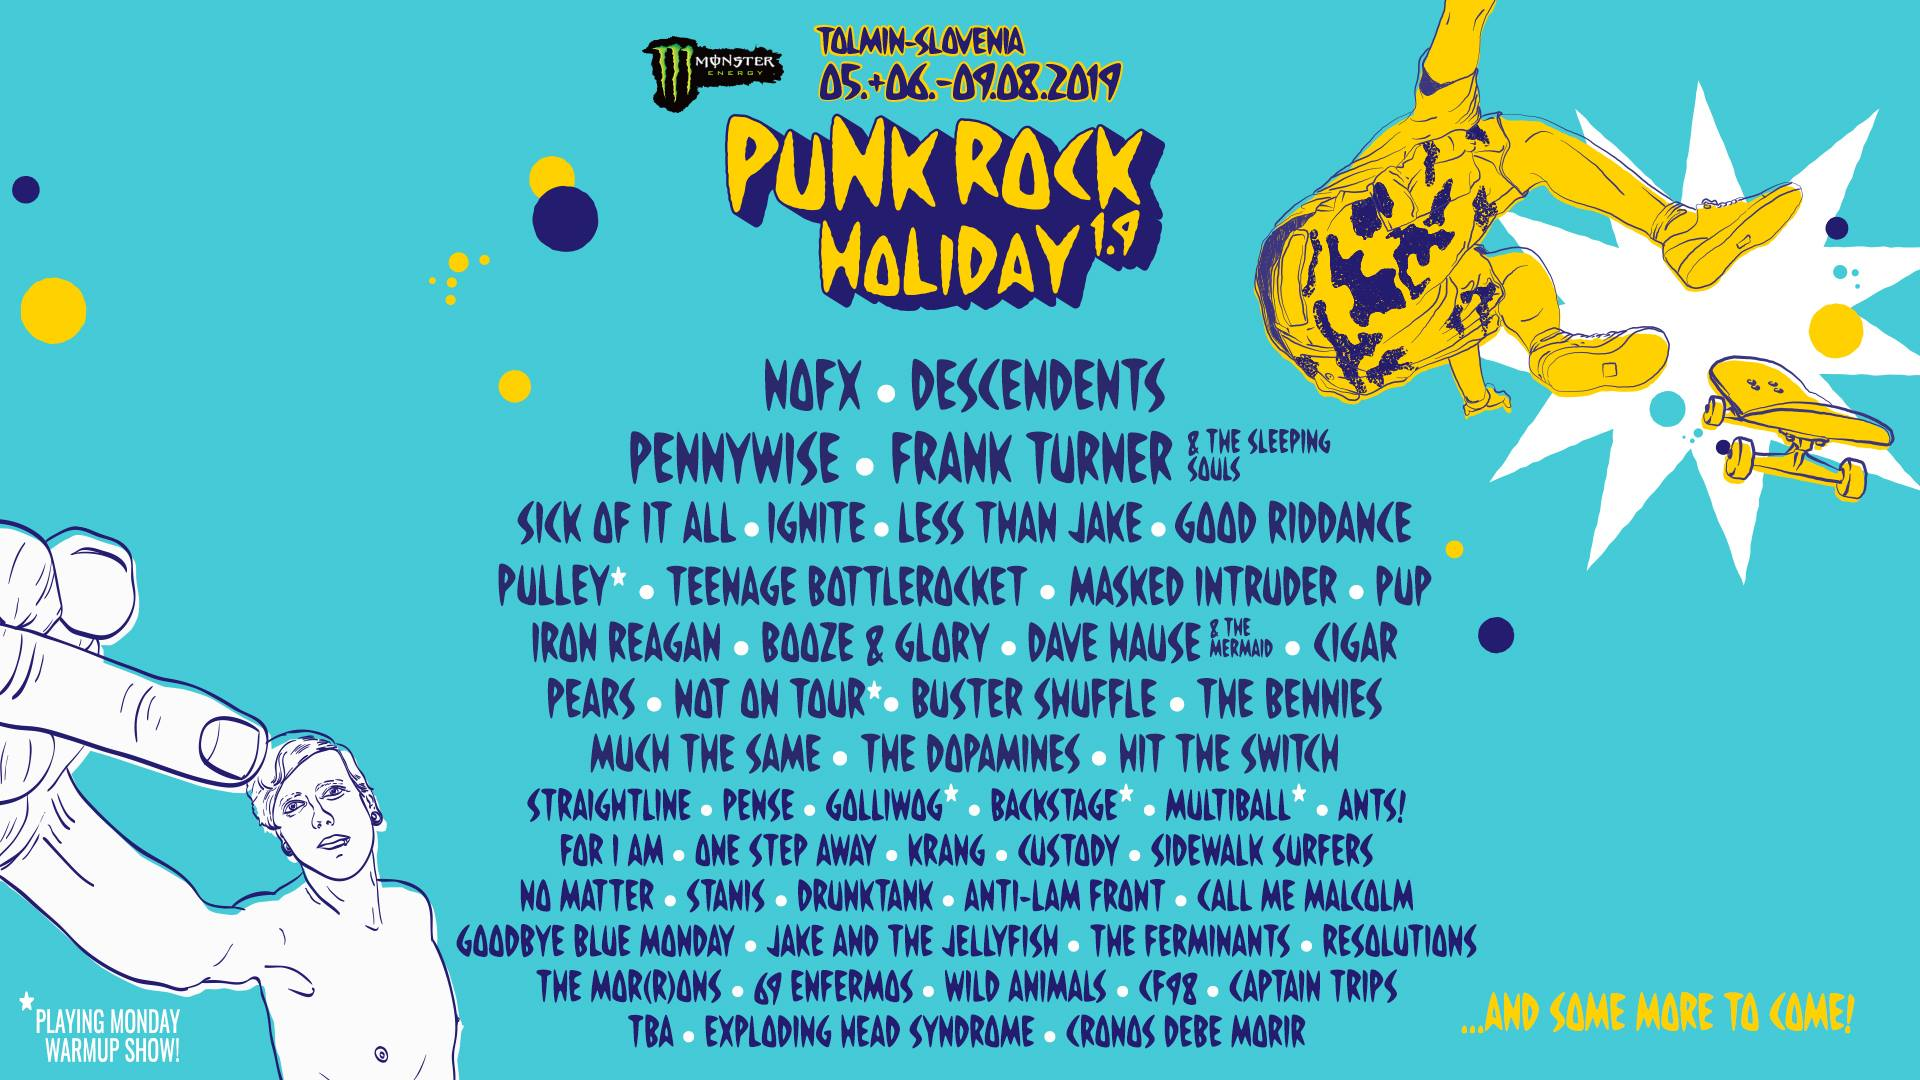 Punk Rock Holiday 2019 - Line-Up